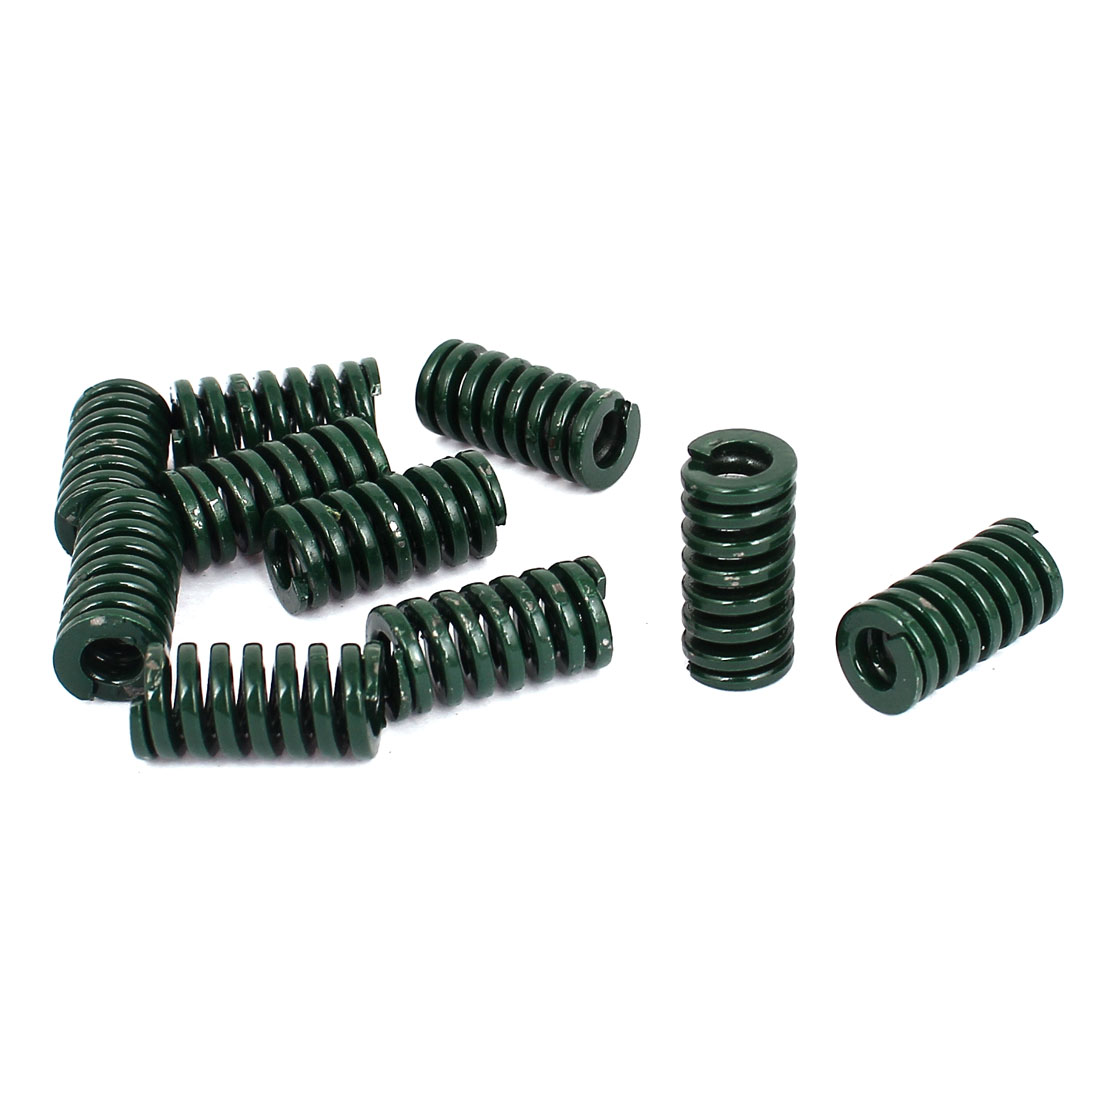 10mm OD 20mm Long Heavy Load Stamping Compression Mold Die Spring Green 10pcs